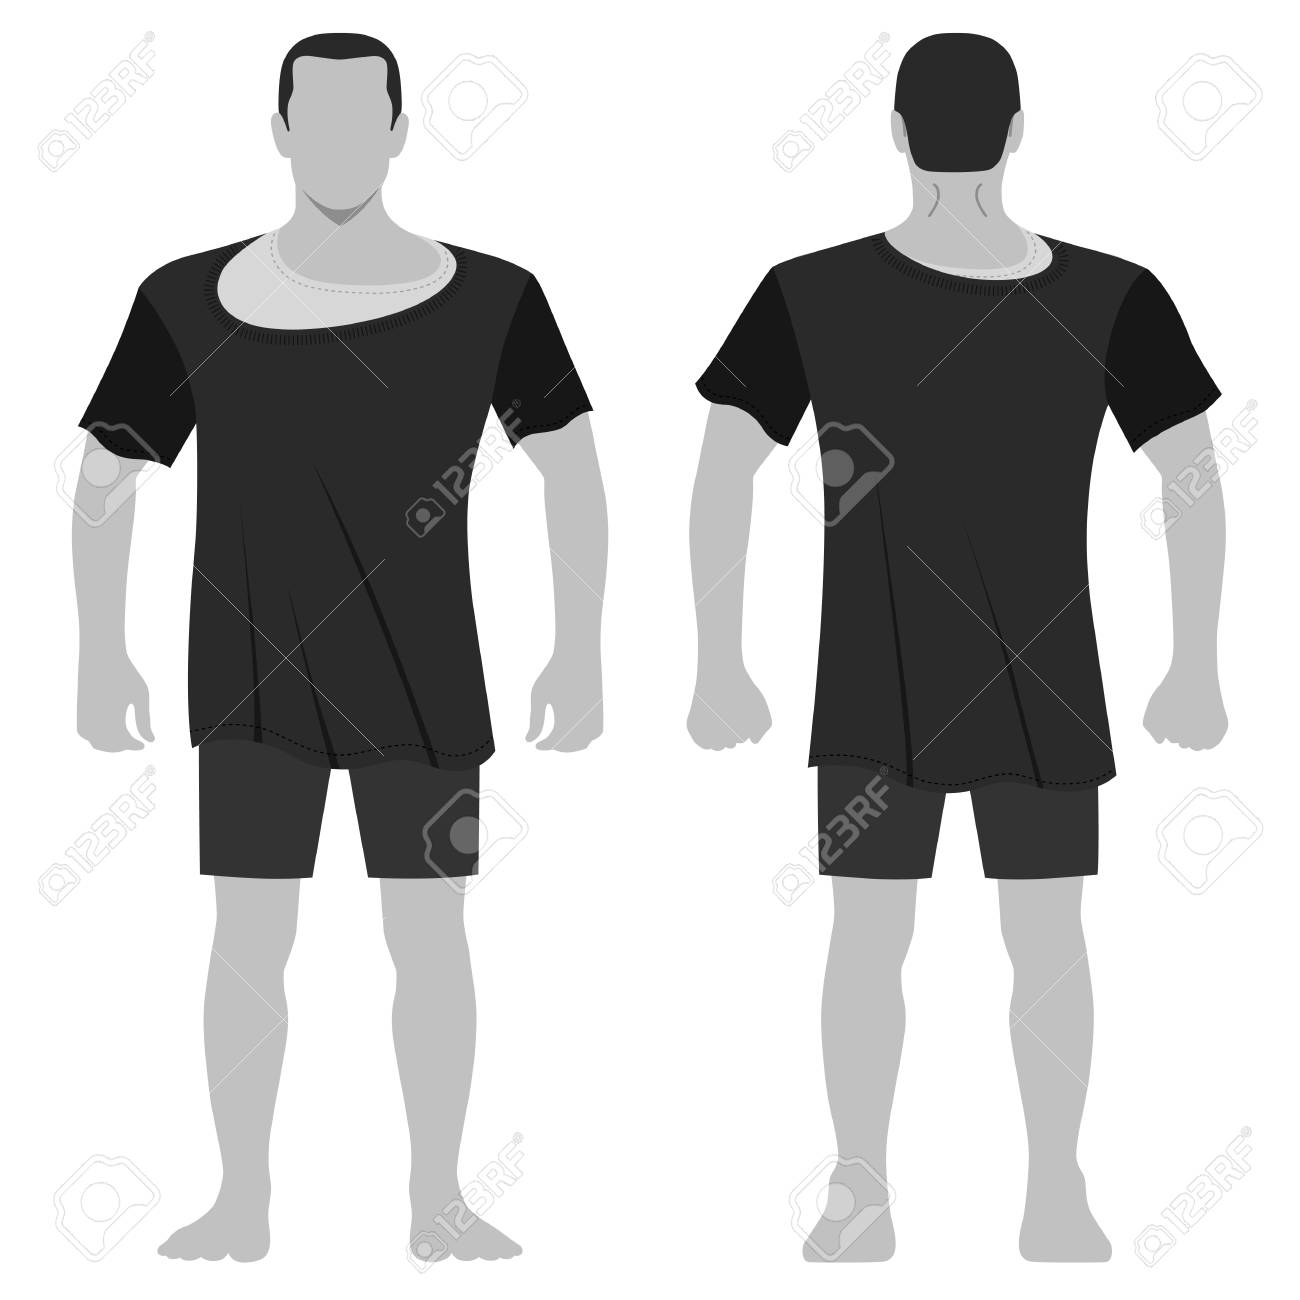 Fashion Man Body Full Length Template Figure Silhouette In Shorts And T Shirt Front